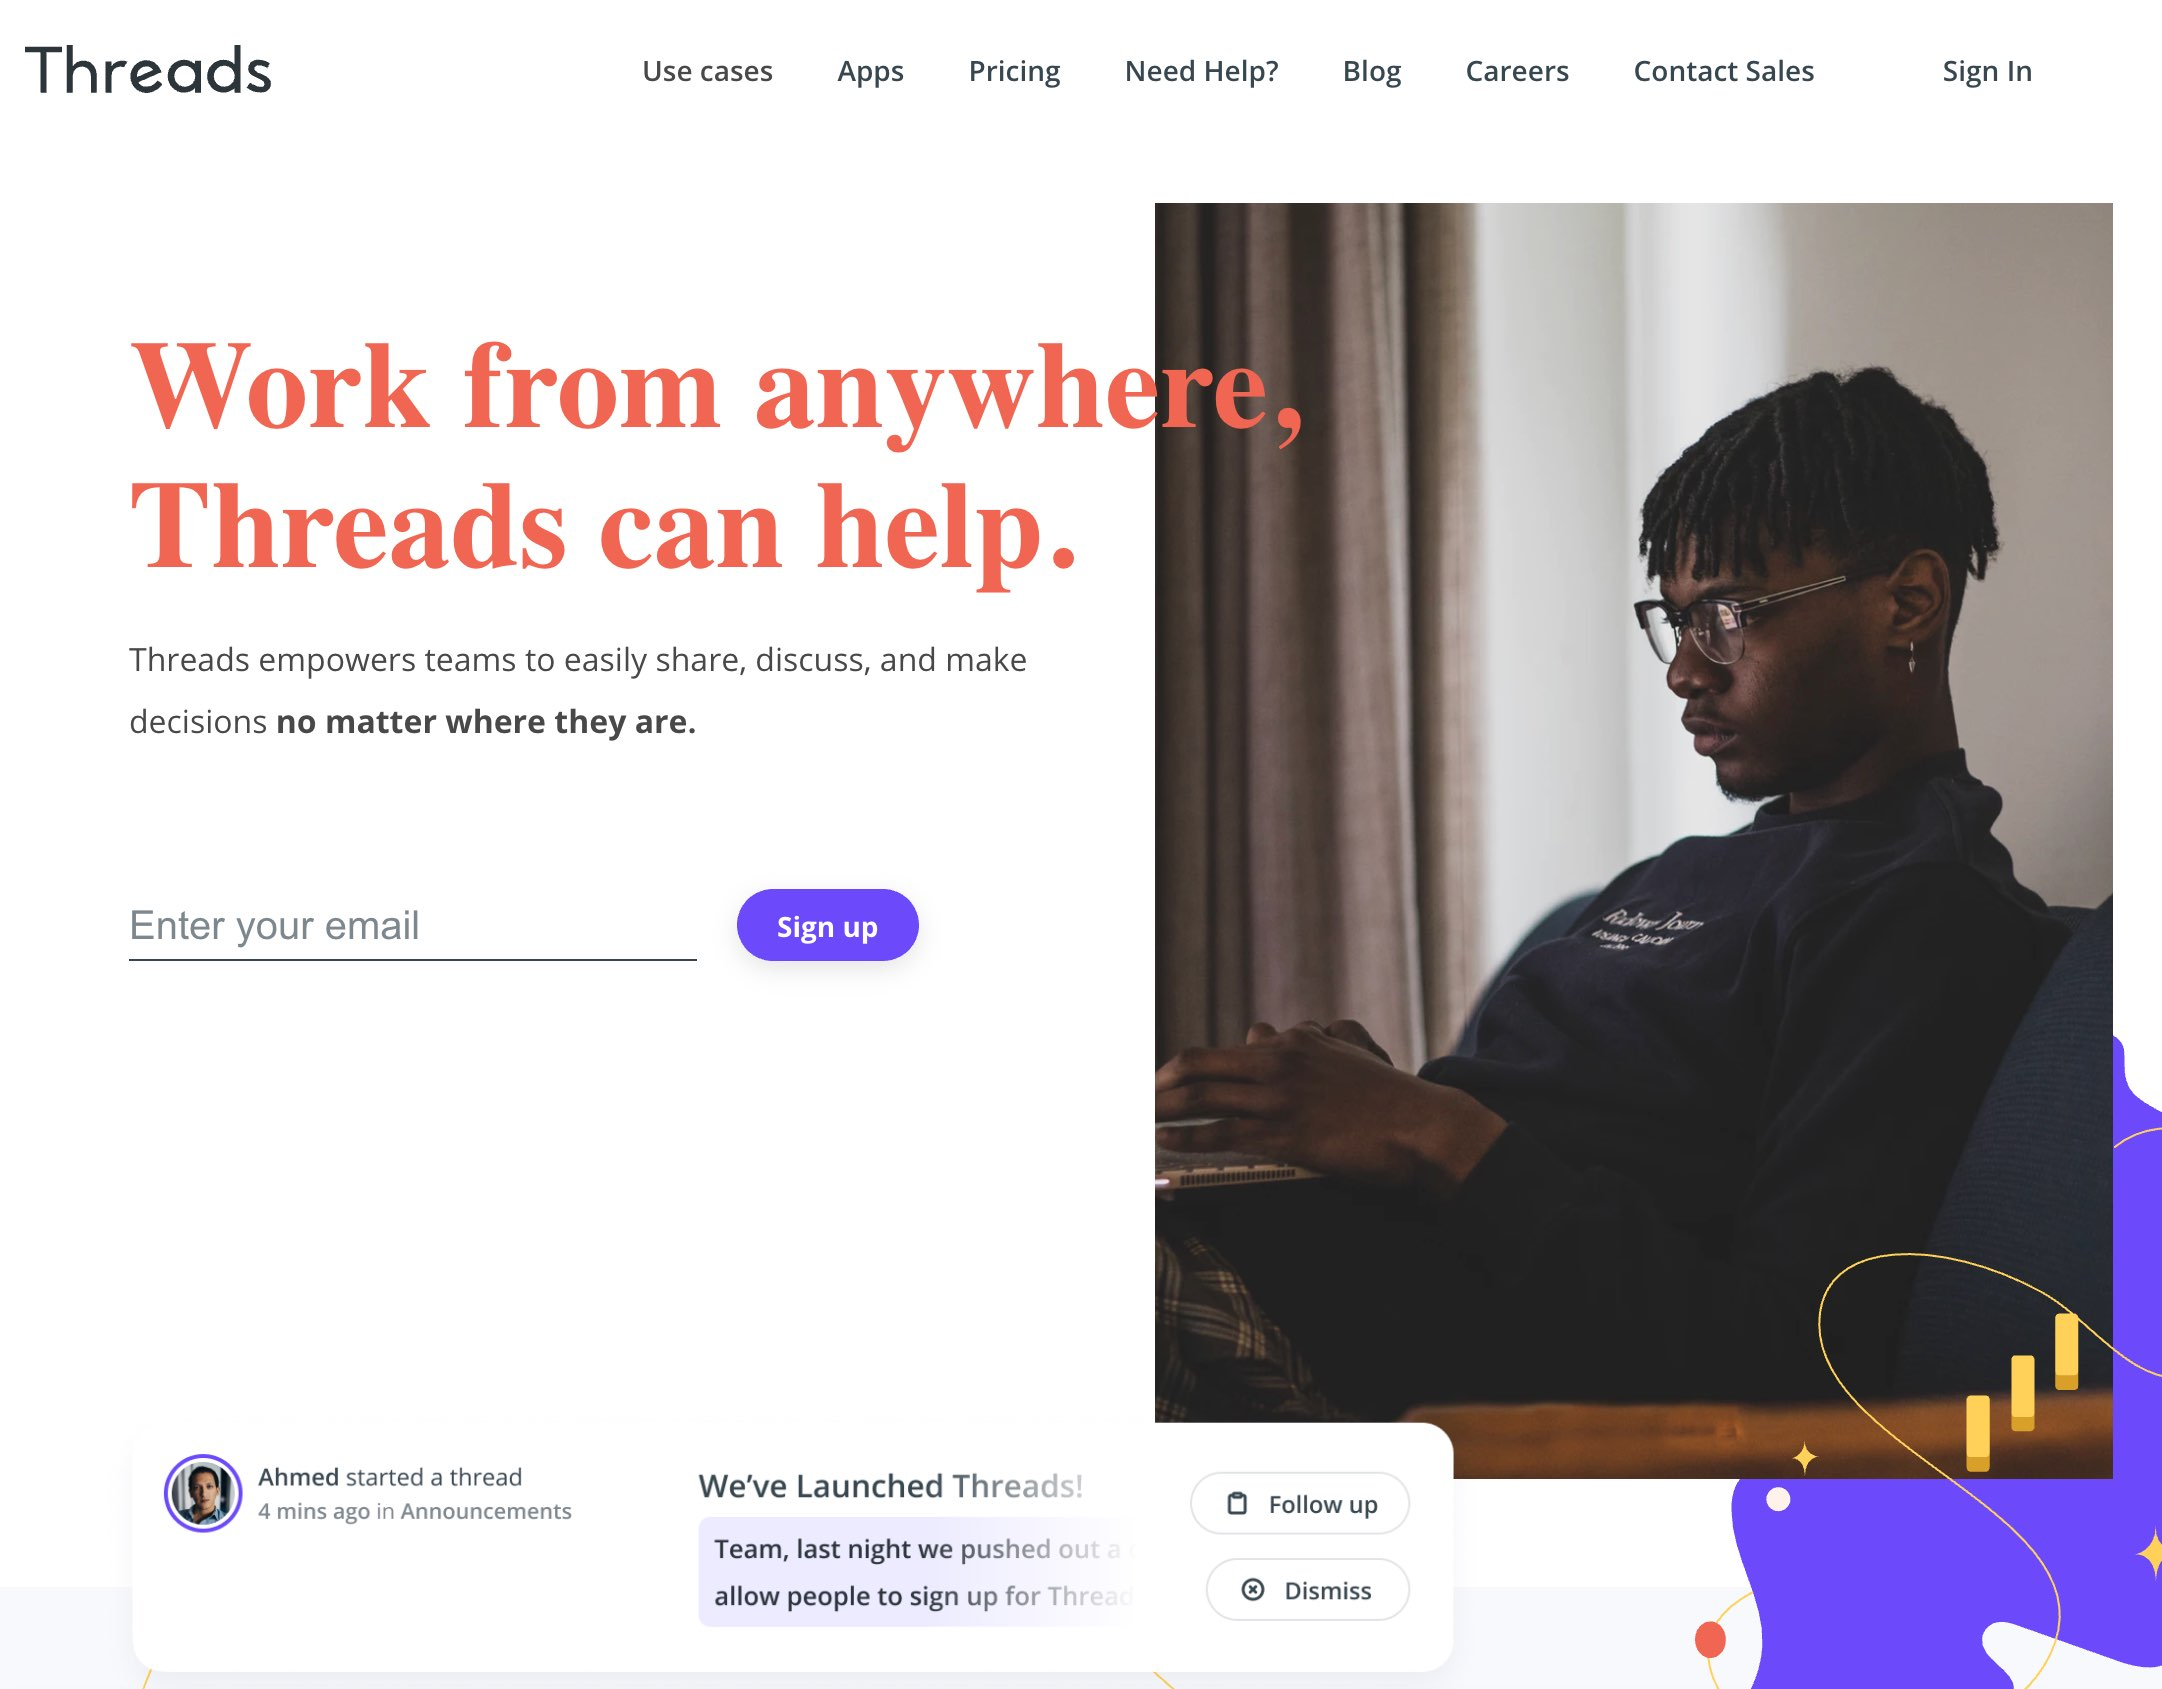 Threads homepage in August 2020